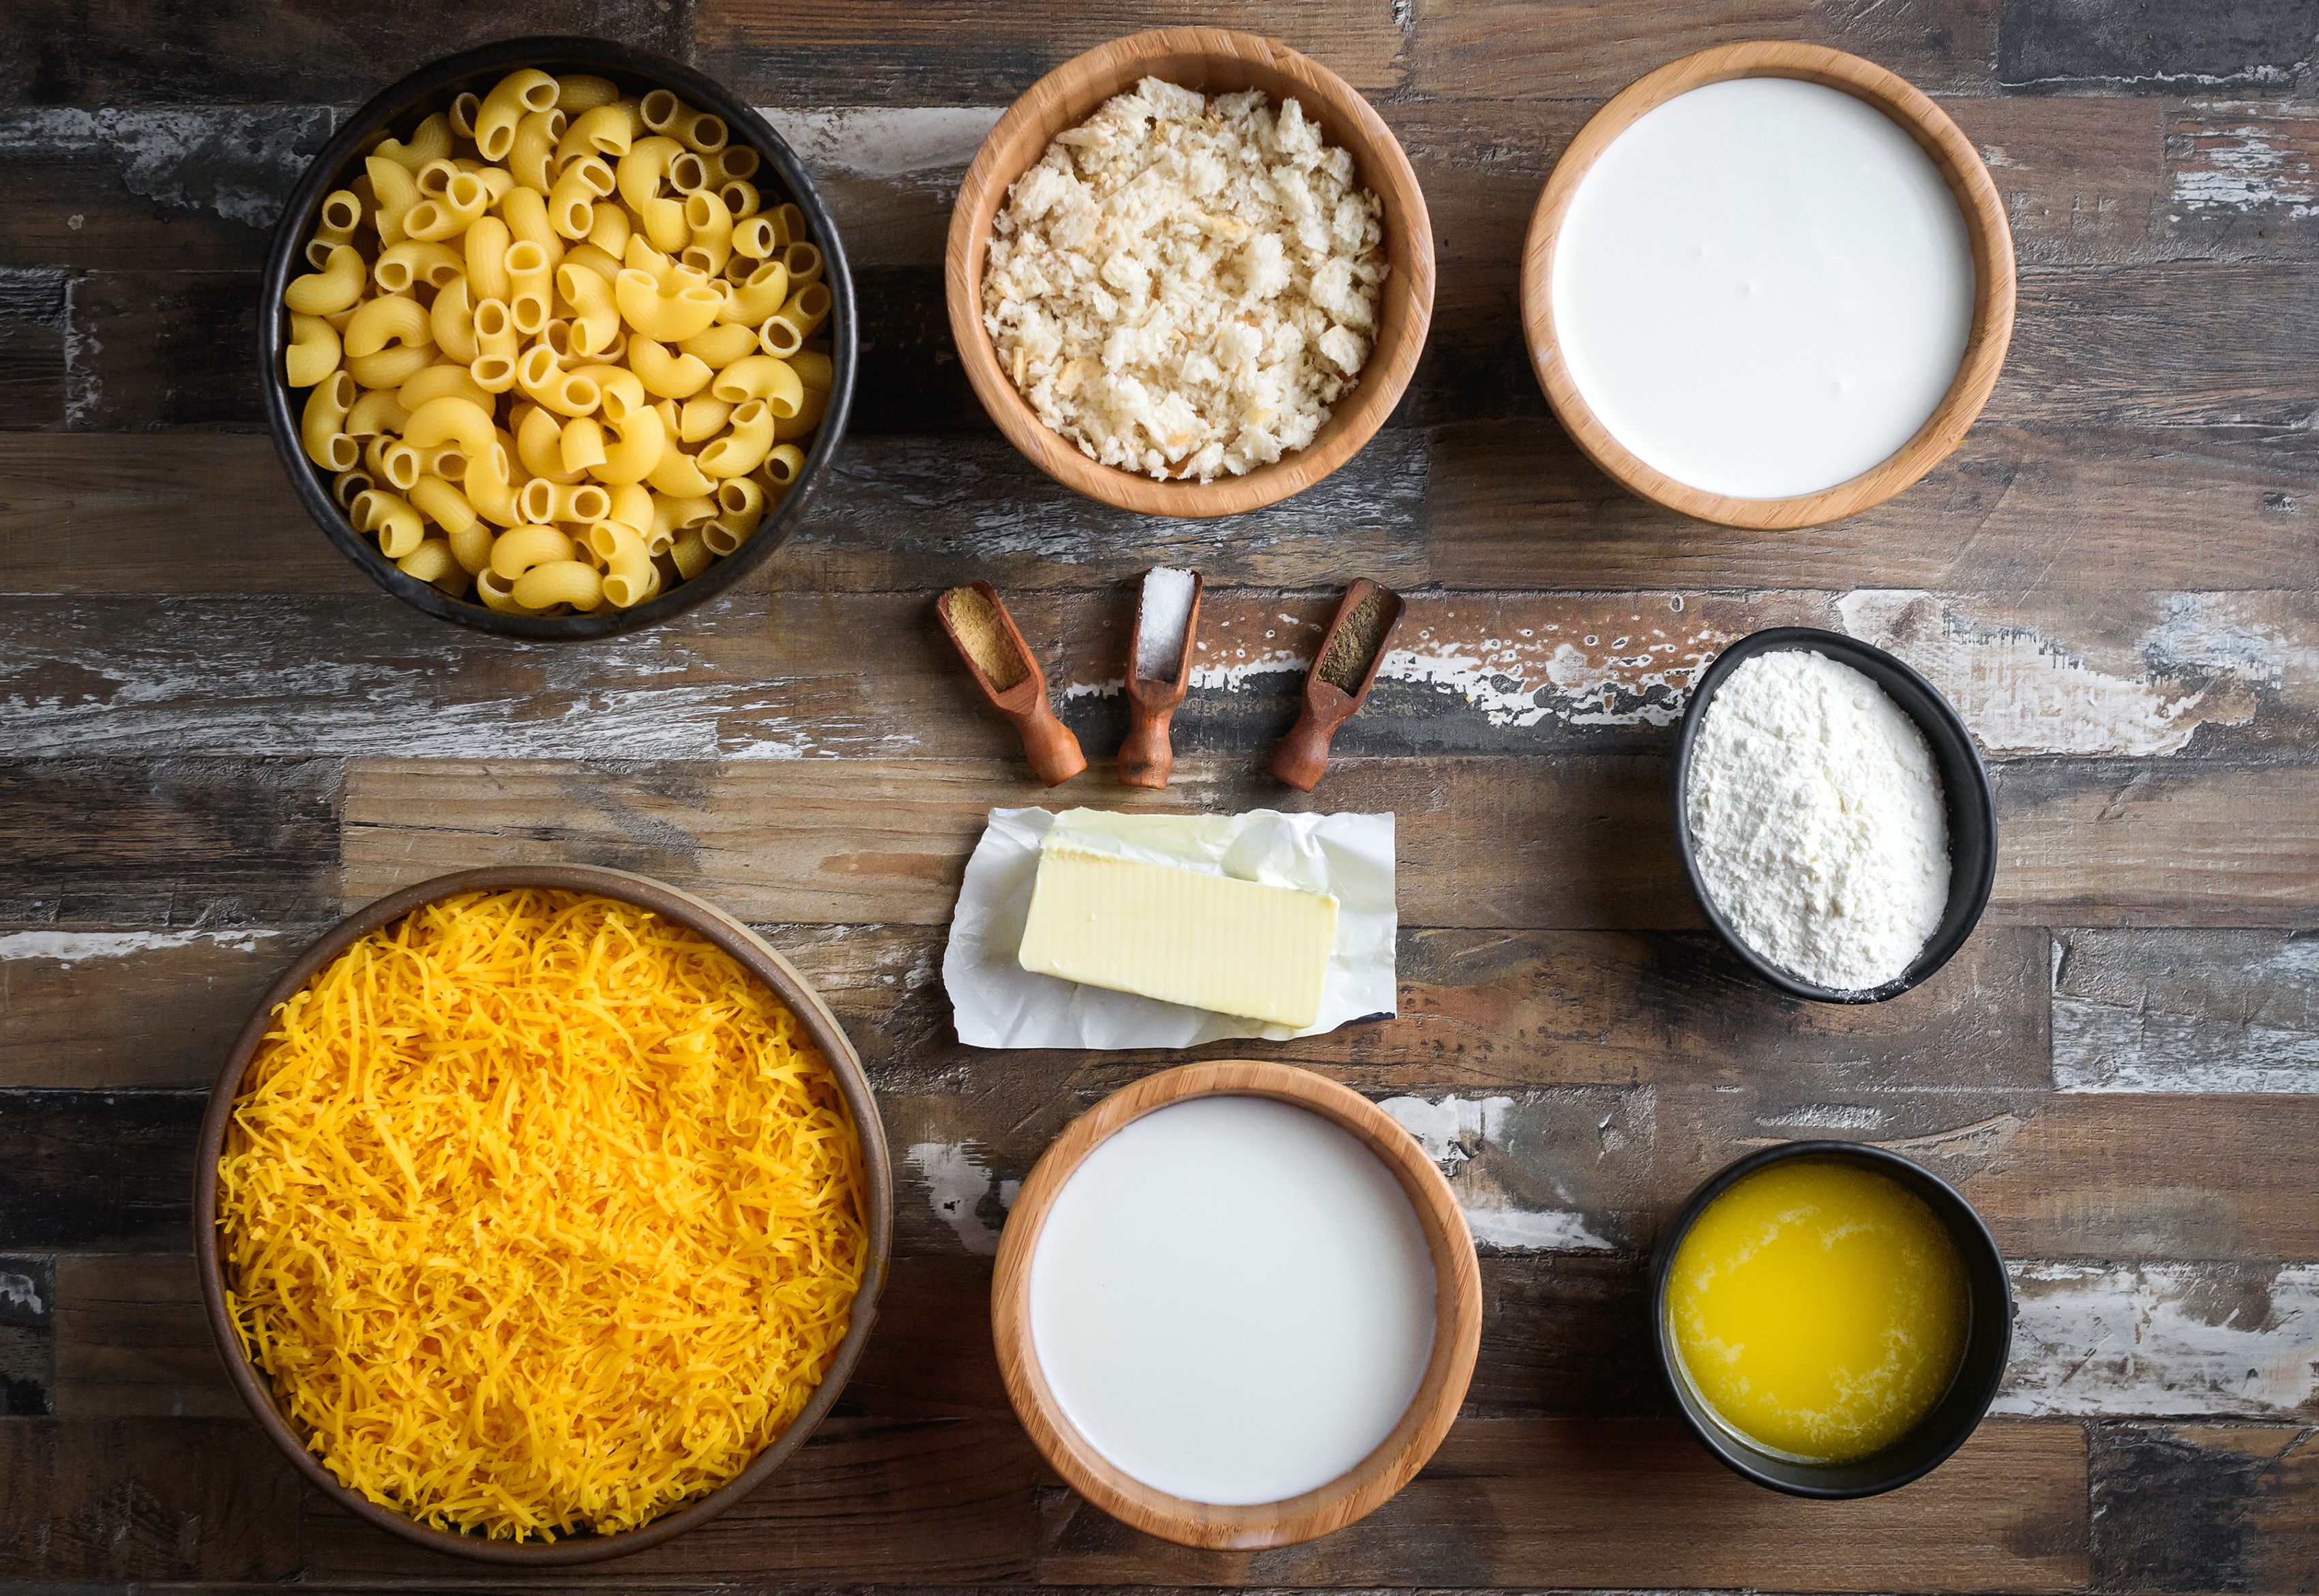 Ingredients for baked mac and cheese